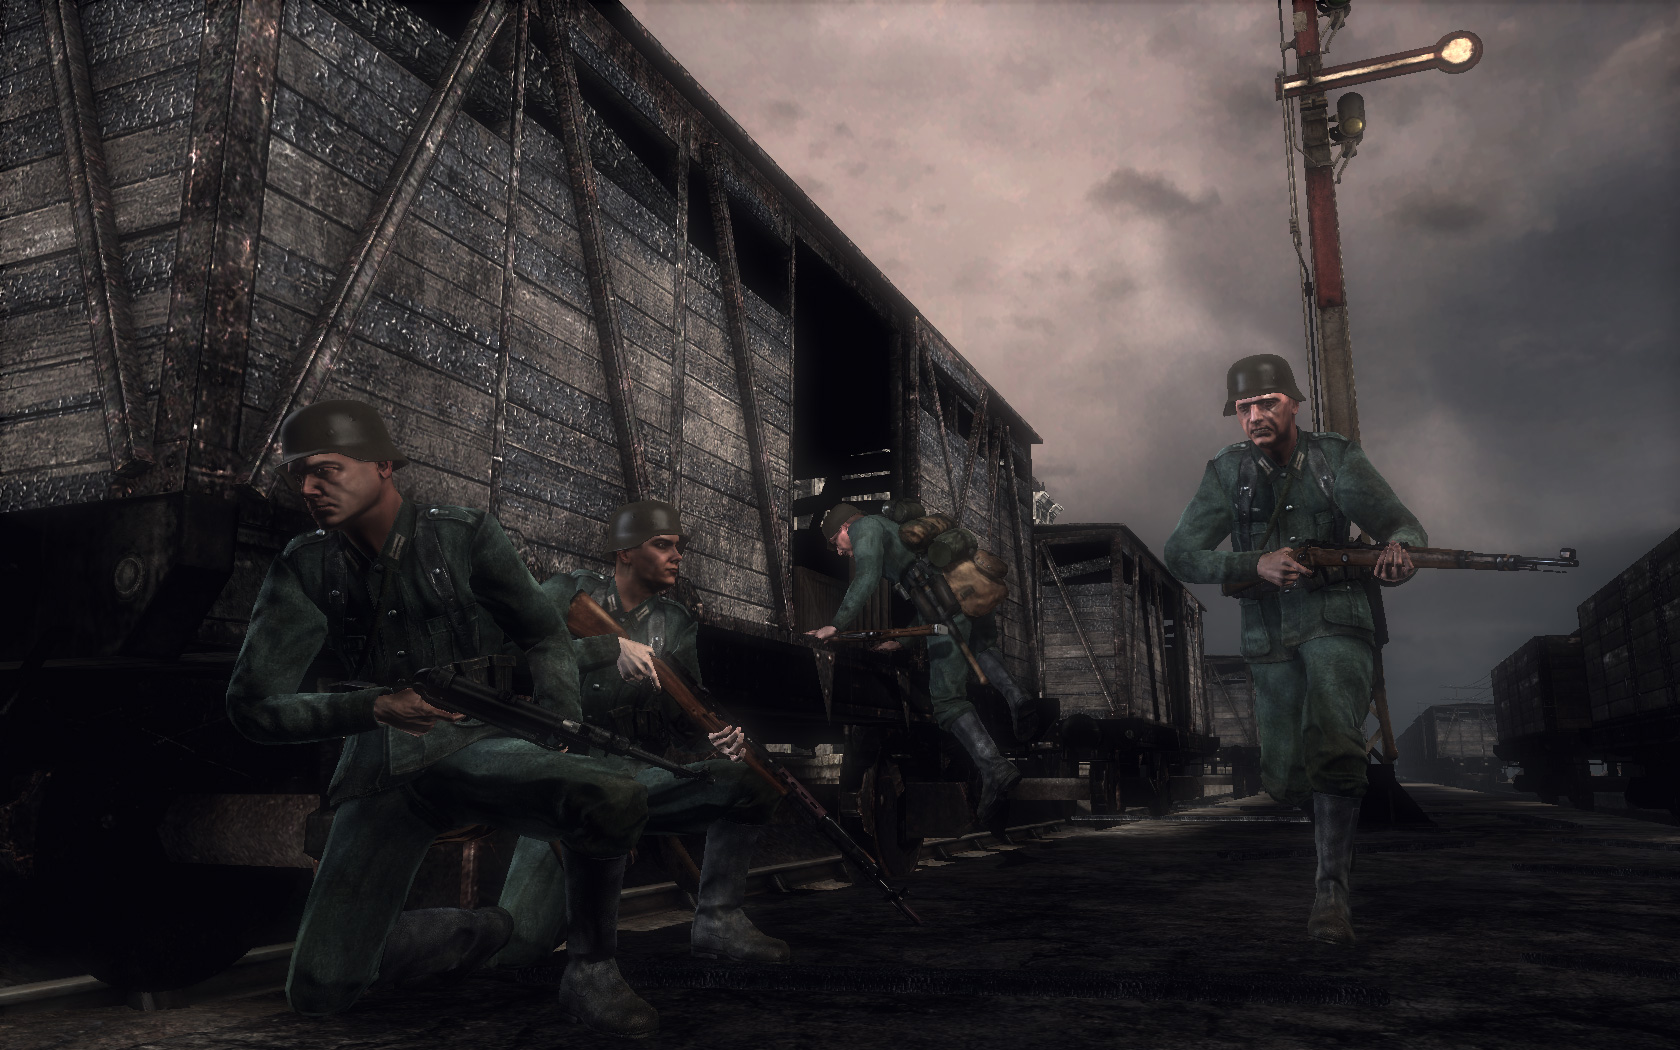 red_orchestra_2_heroes_of_stalingrad_7.jpg